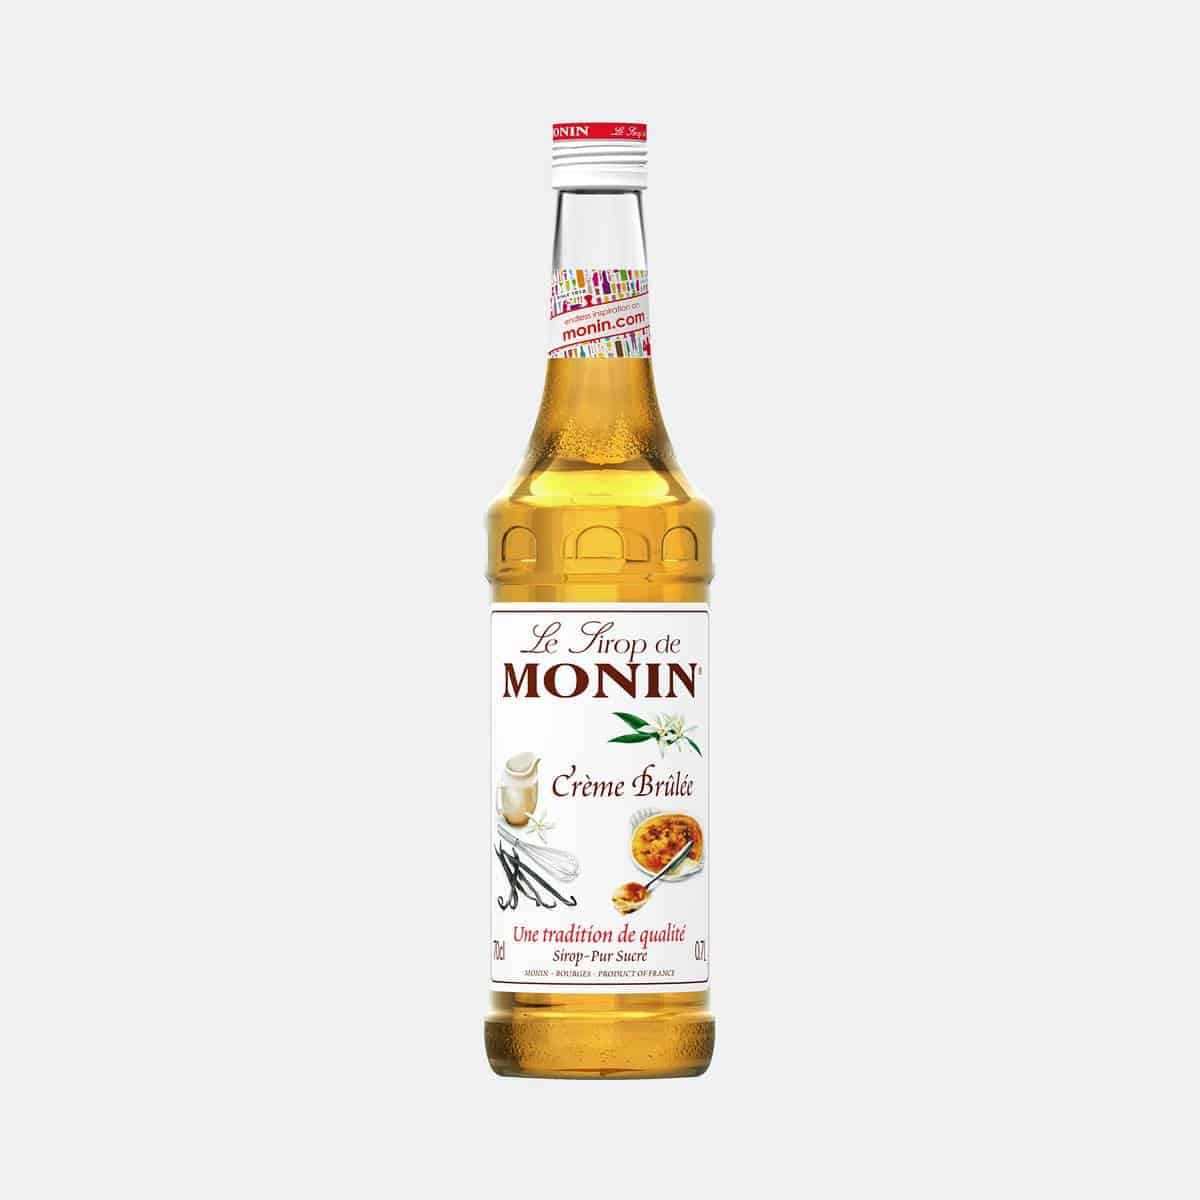 Monin Creme Brulee Syrup 700ml Glass Bottle